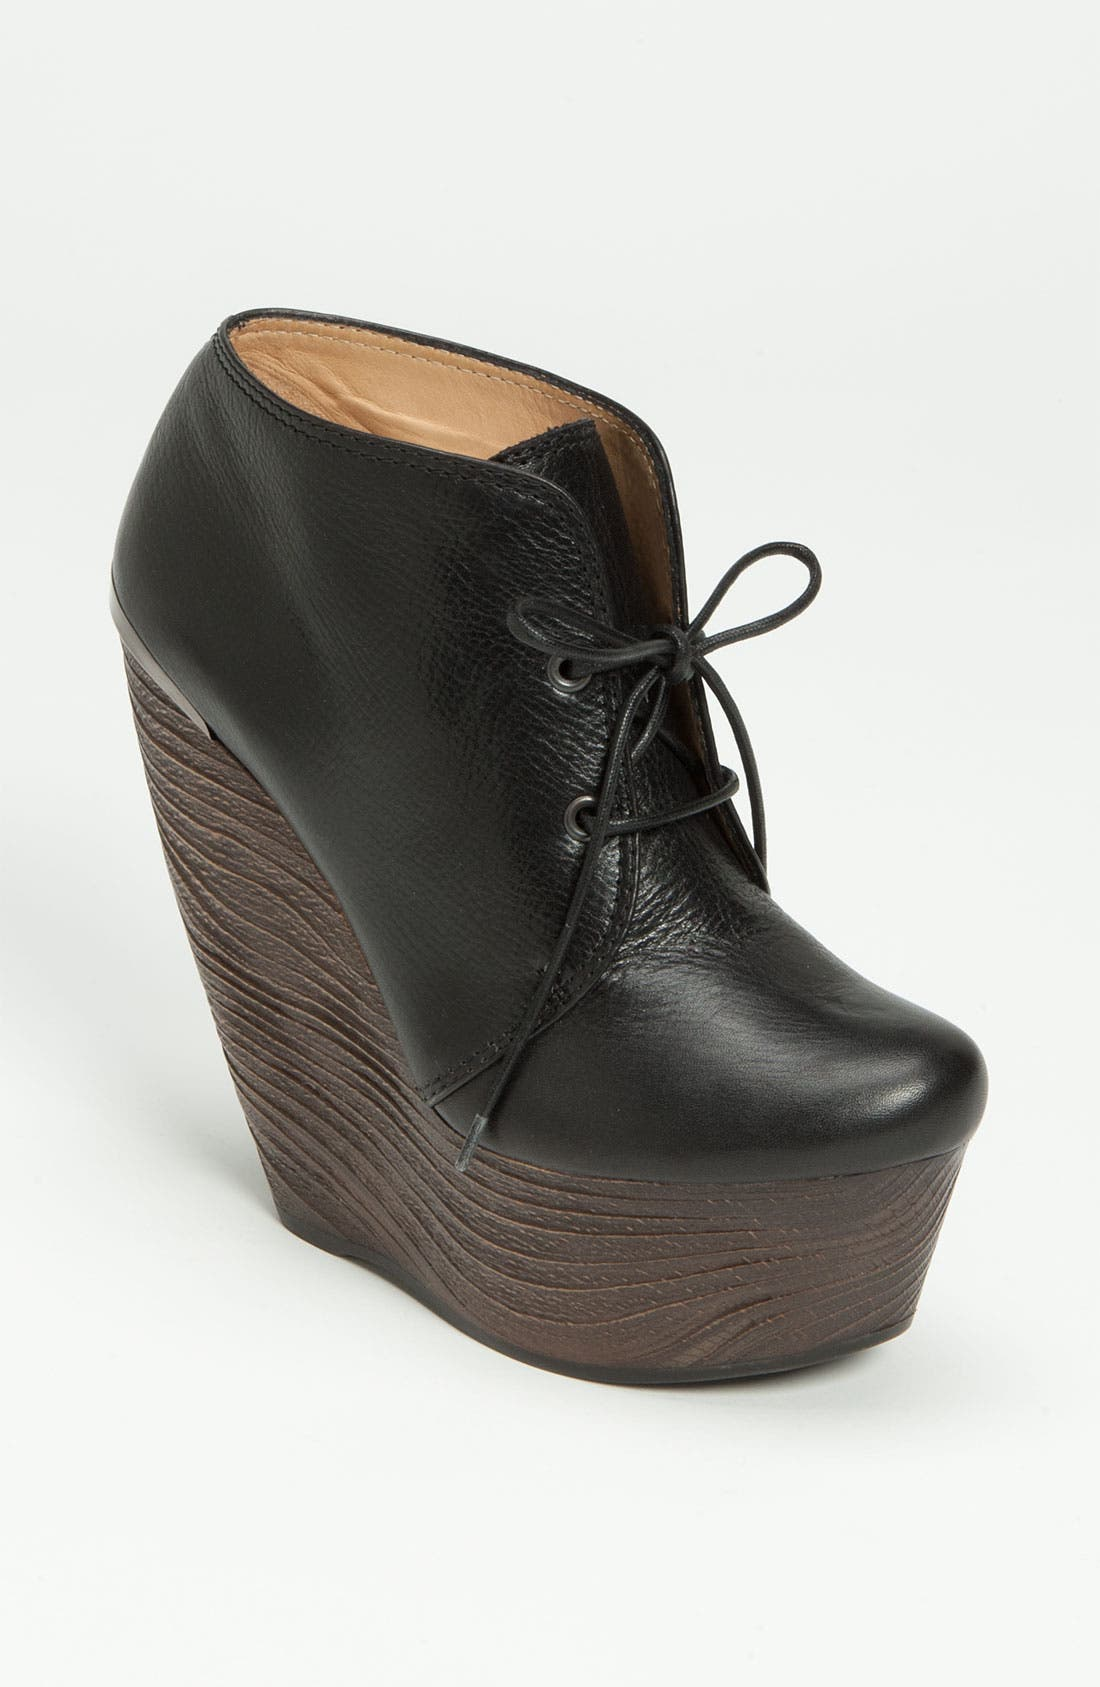 Main Image - Lanvin 'Crazy' Wedge Oxford